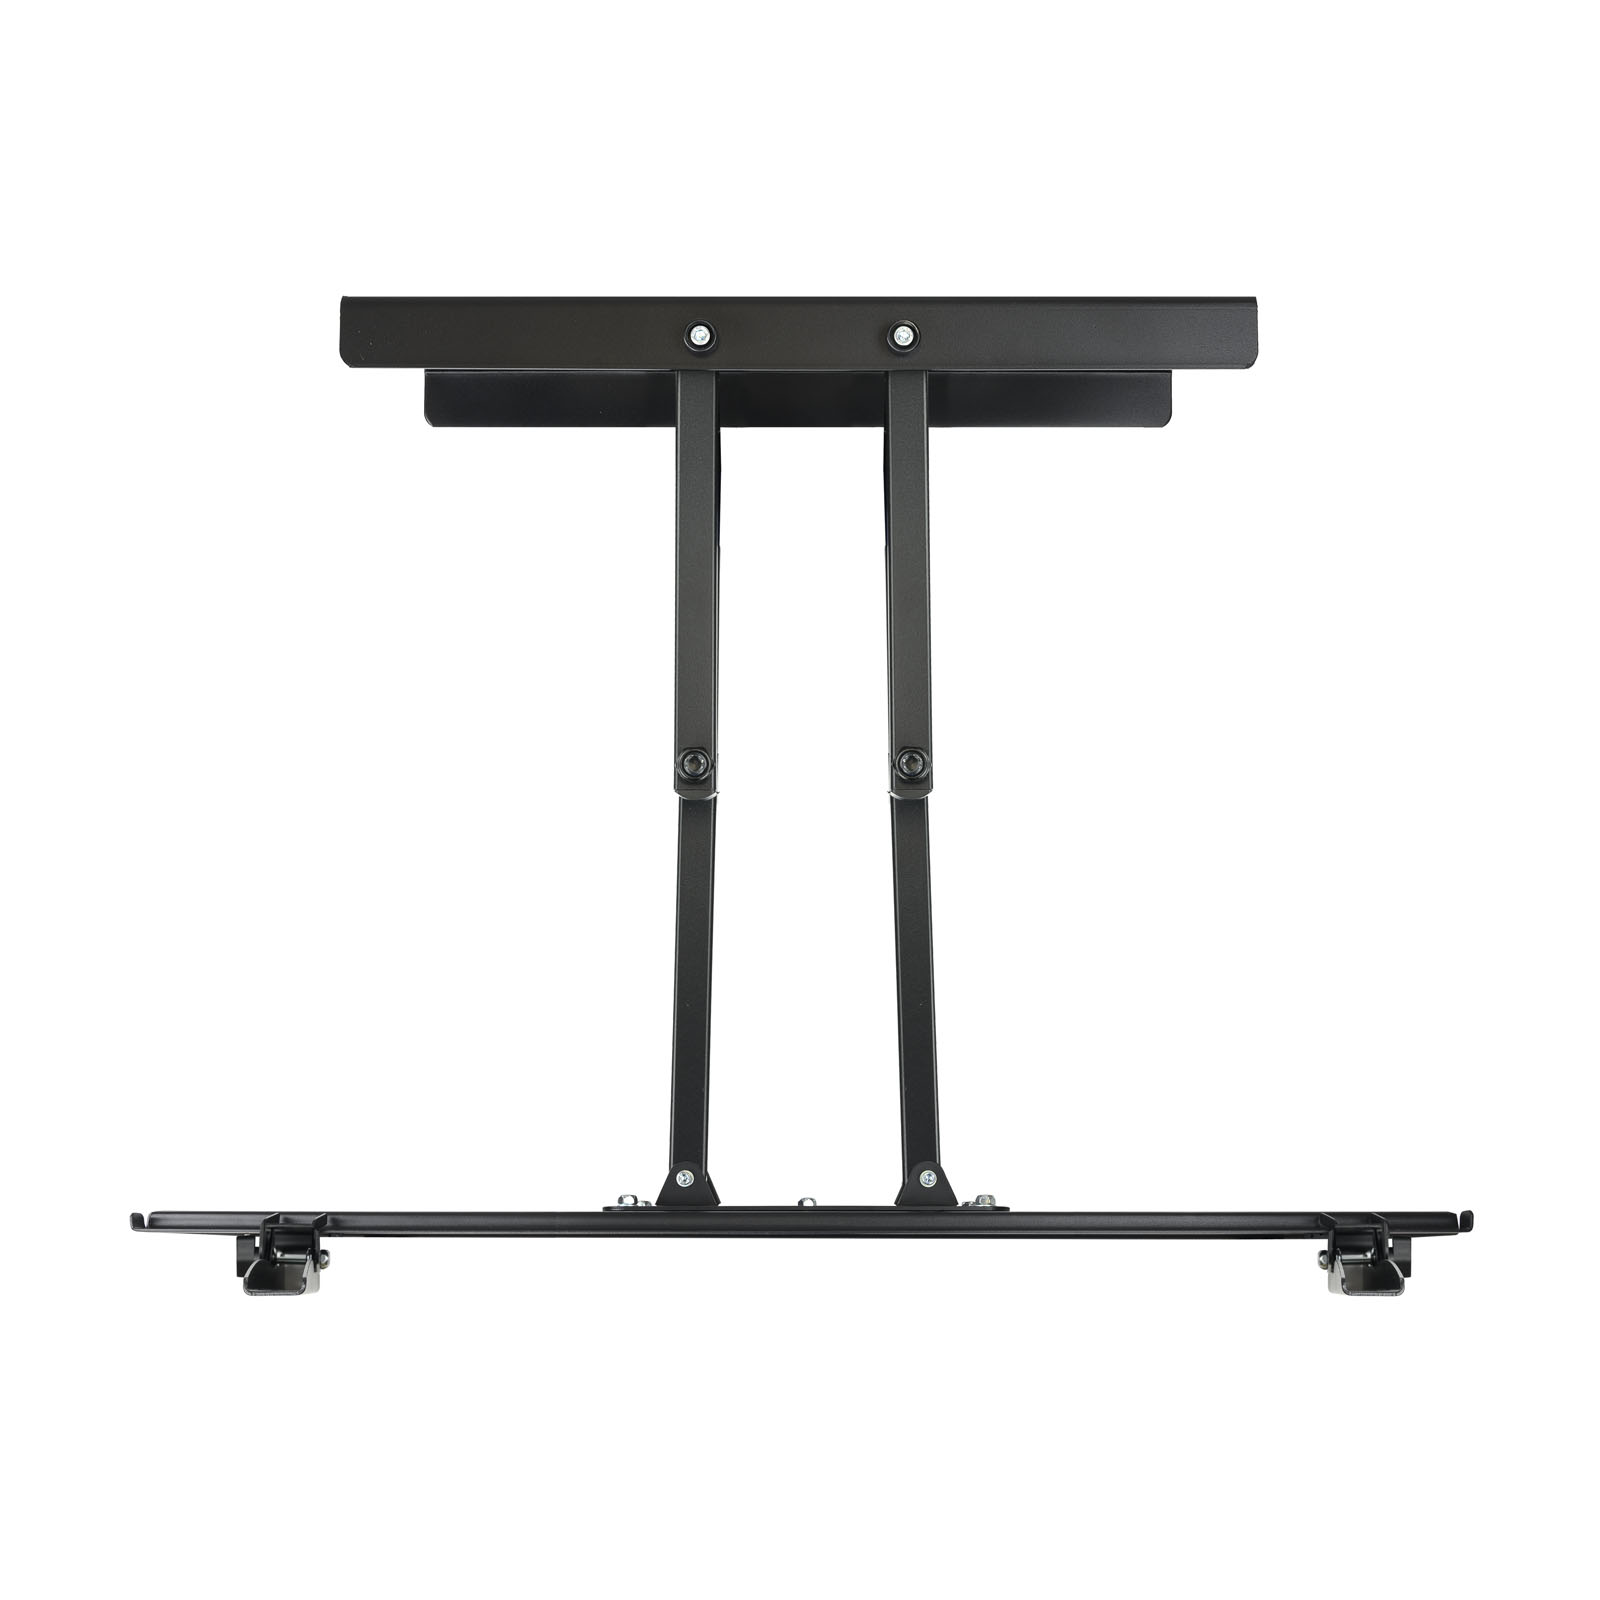 SOPORTE MONITOR/TV LP7063TN-B 37-70 GIRA/INCLI NEGRO